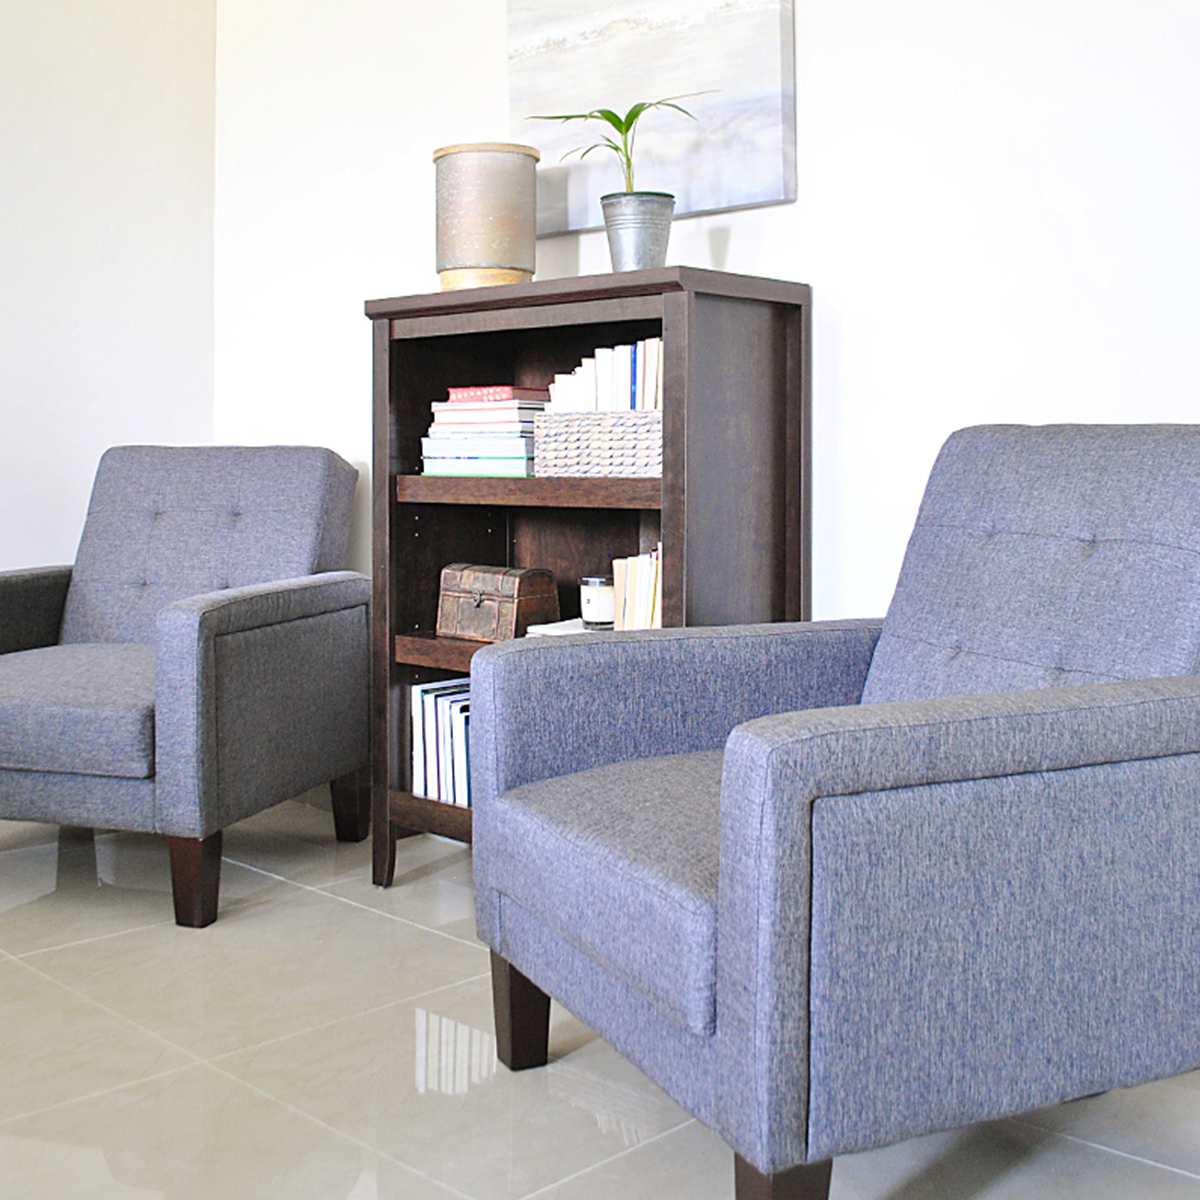 Comfy sitting area on one side with Porter Chairs, and a 3-Shelf Bookcase which ties the room together. photo